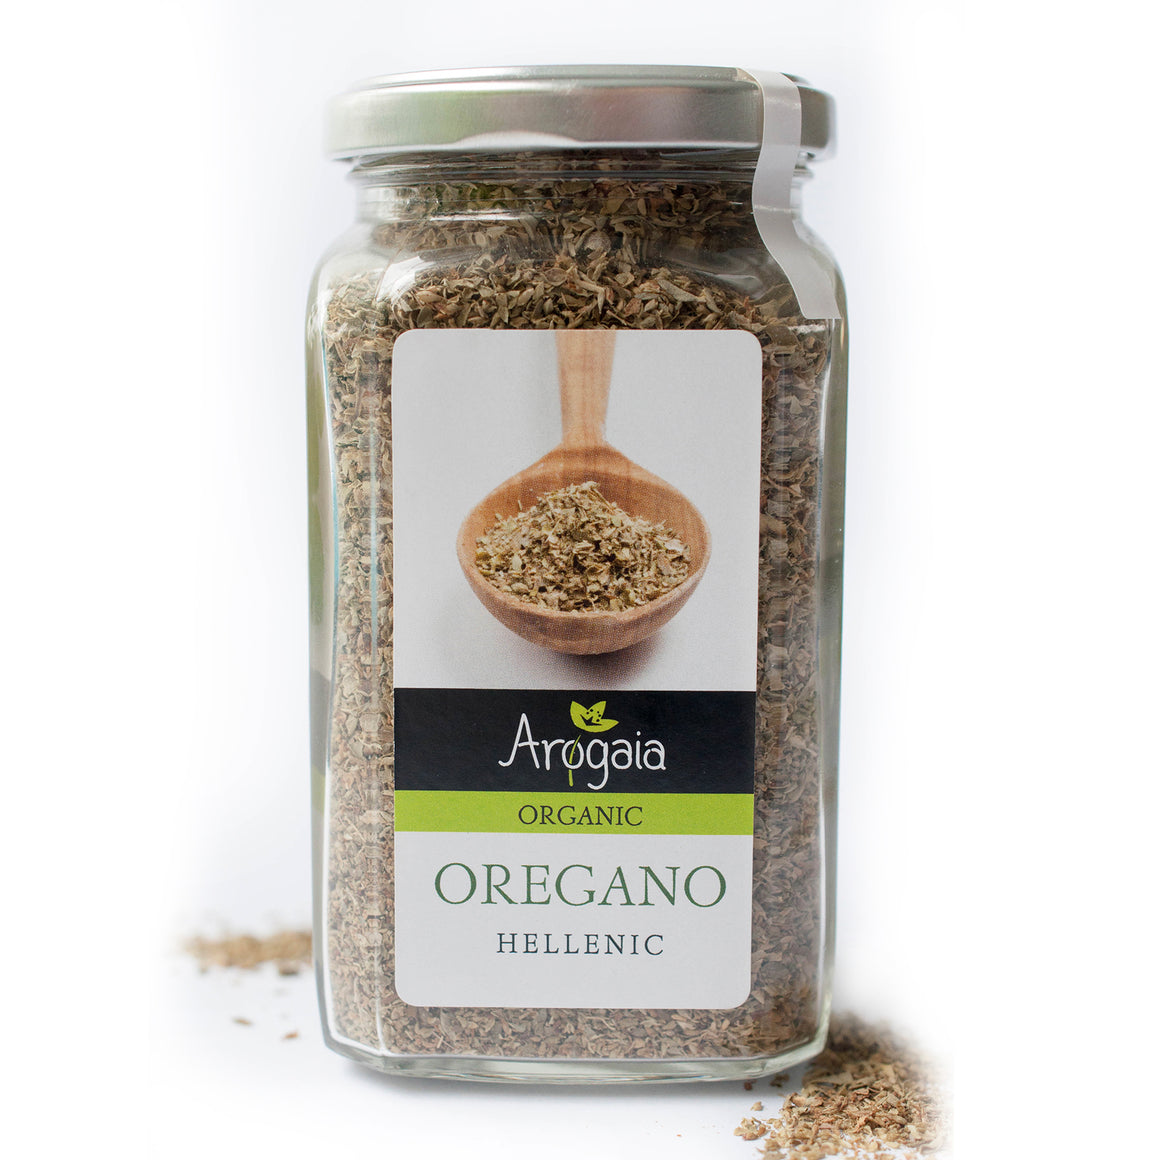 Arogaia Organic Greek Oregano, 70gr